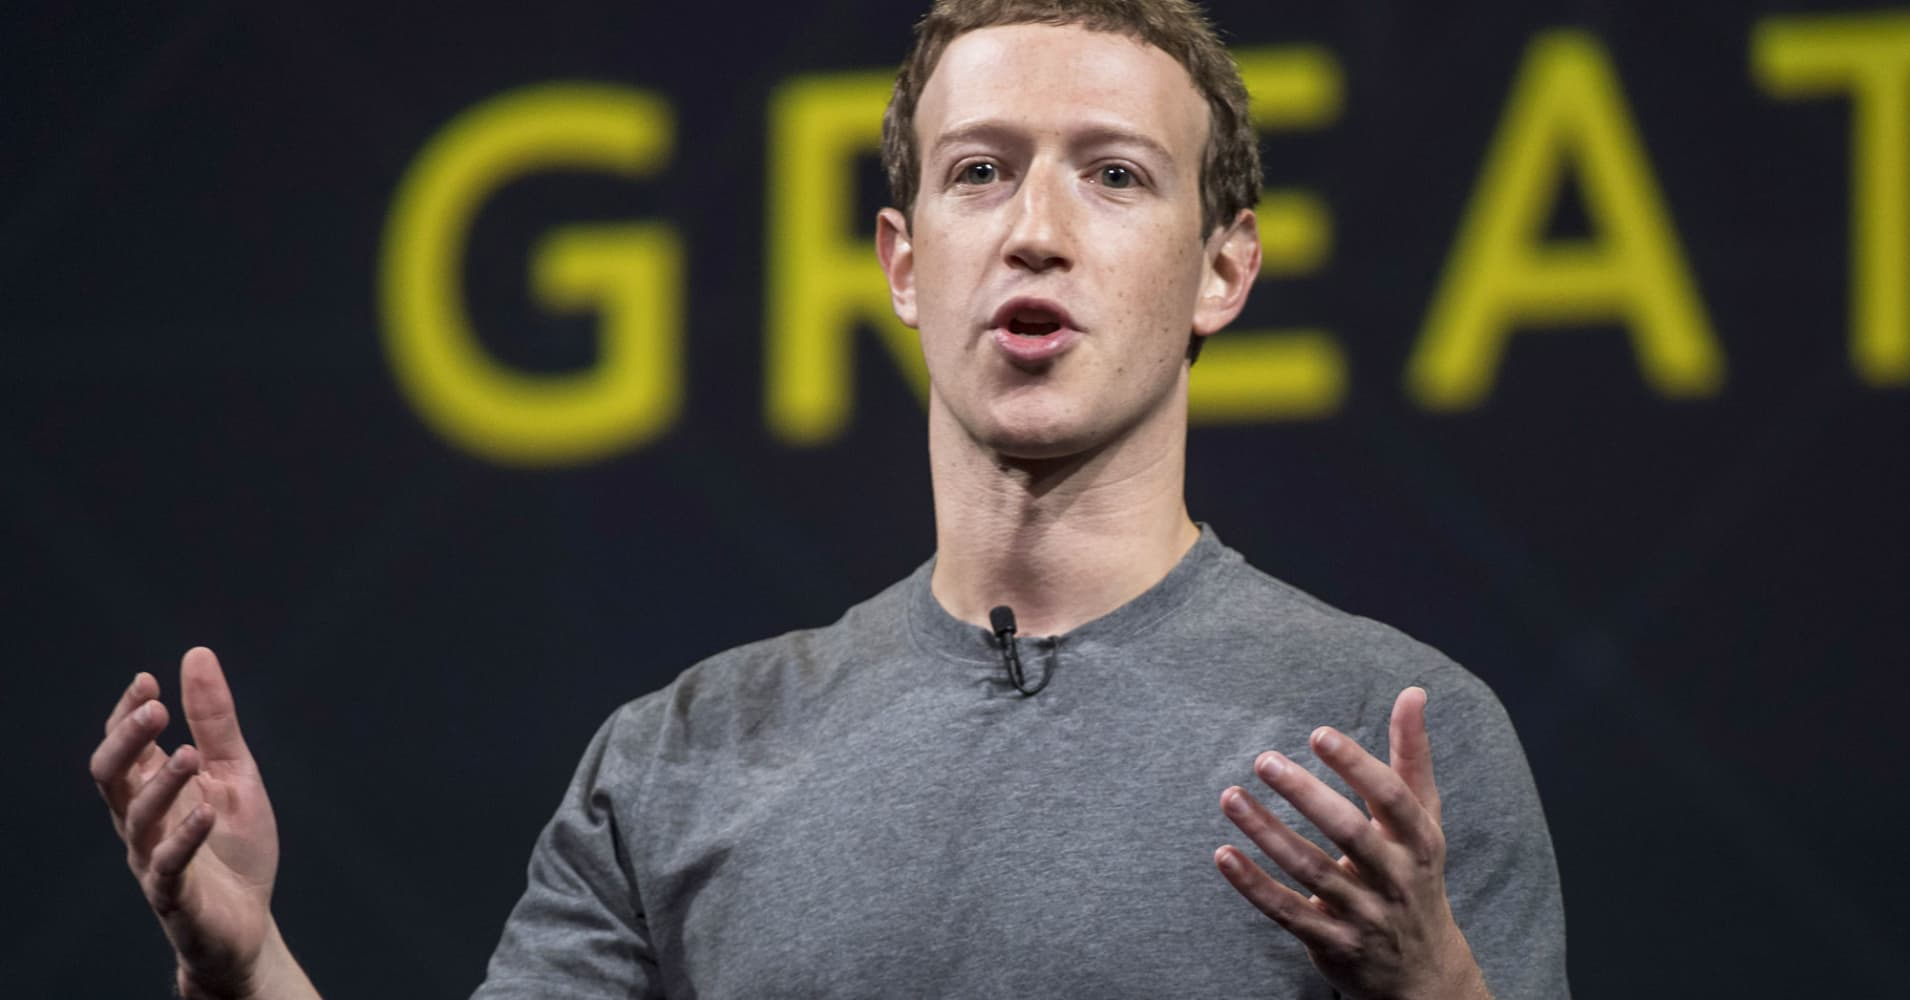 A look inside Facebook's efforts to expand Wi-Fi in developing countries